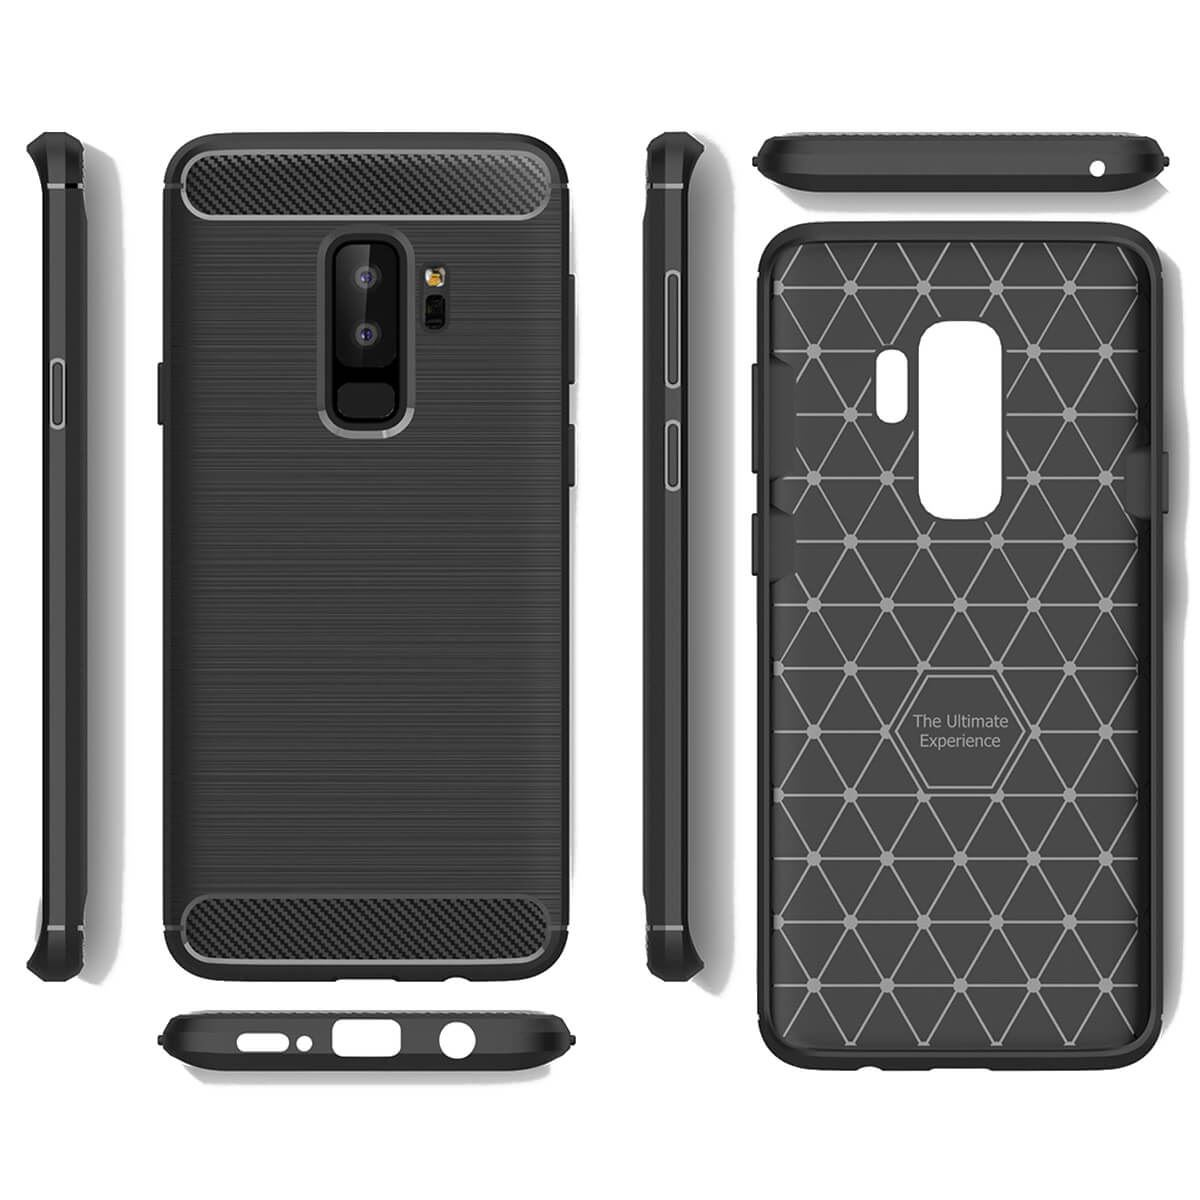 ShockProof-Rugged-Carbon-Case-For-Samsung-Galaxy-S9-amp-S9-Plus-Luxury-TPU-Cover thumbnail 3